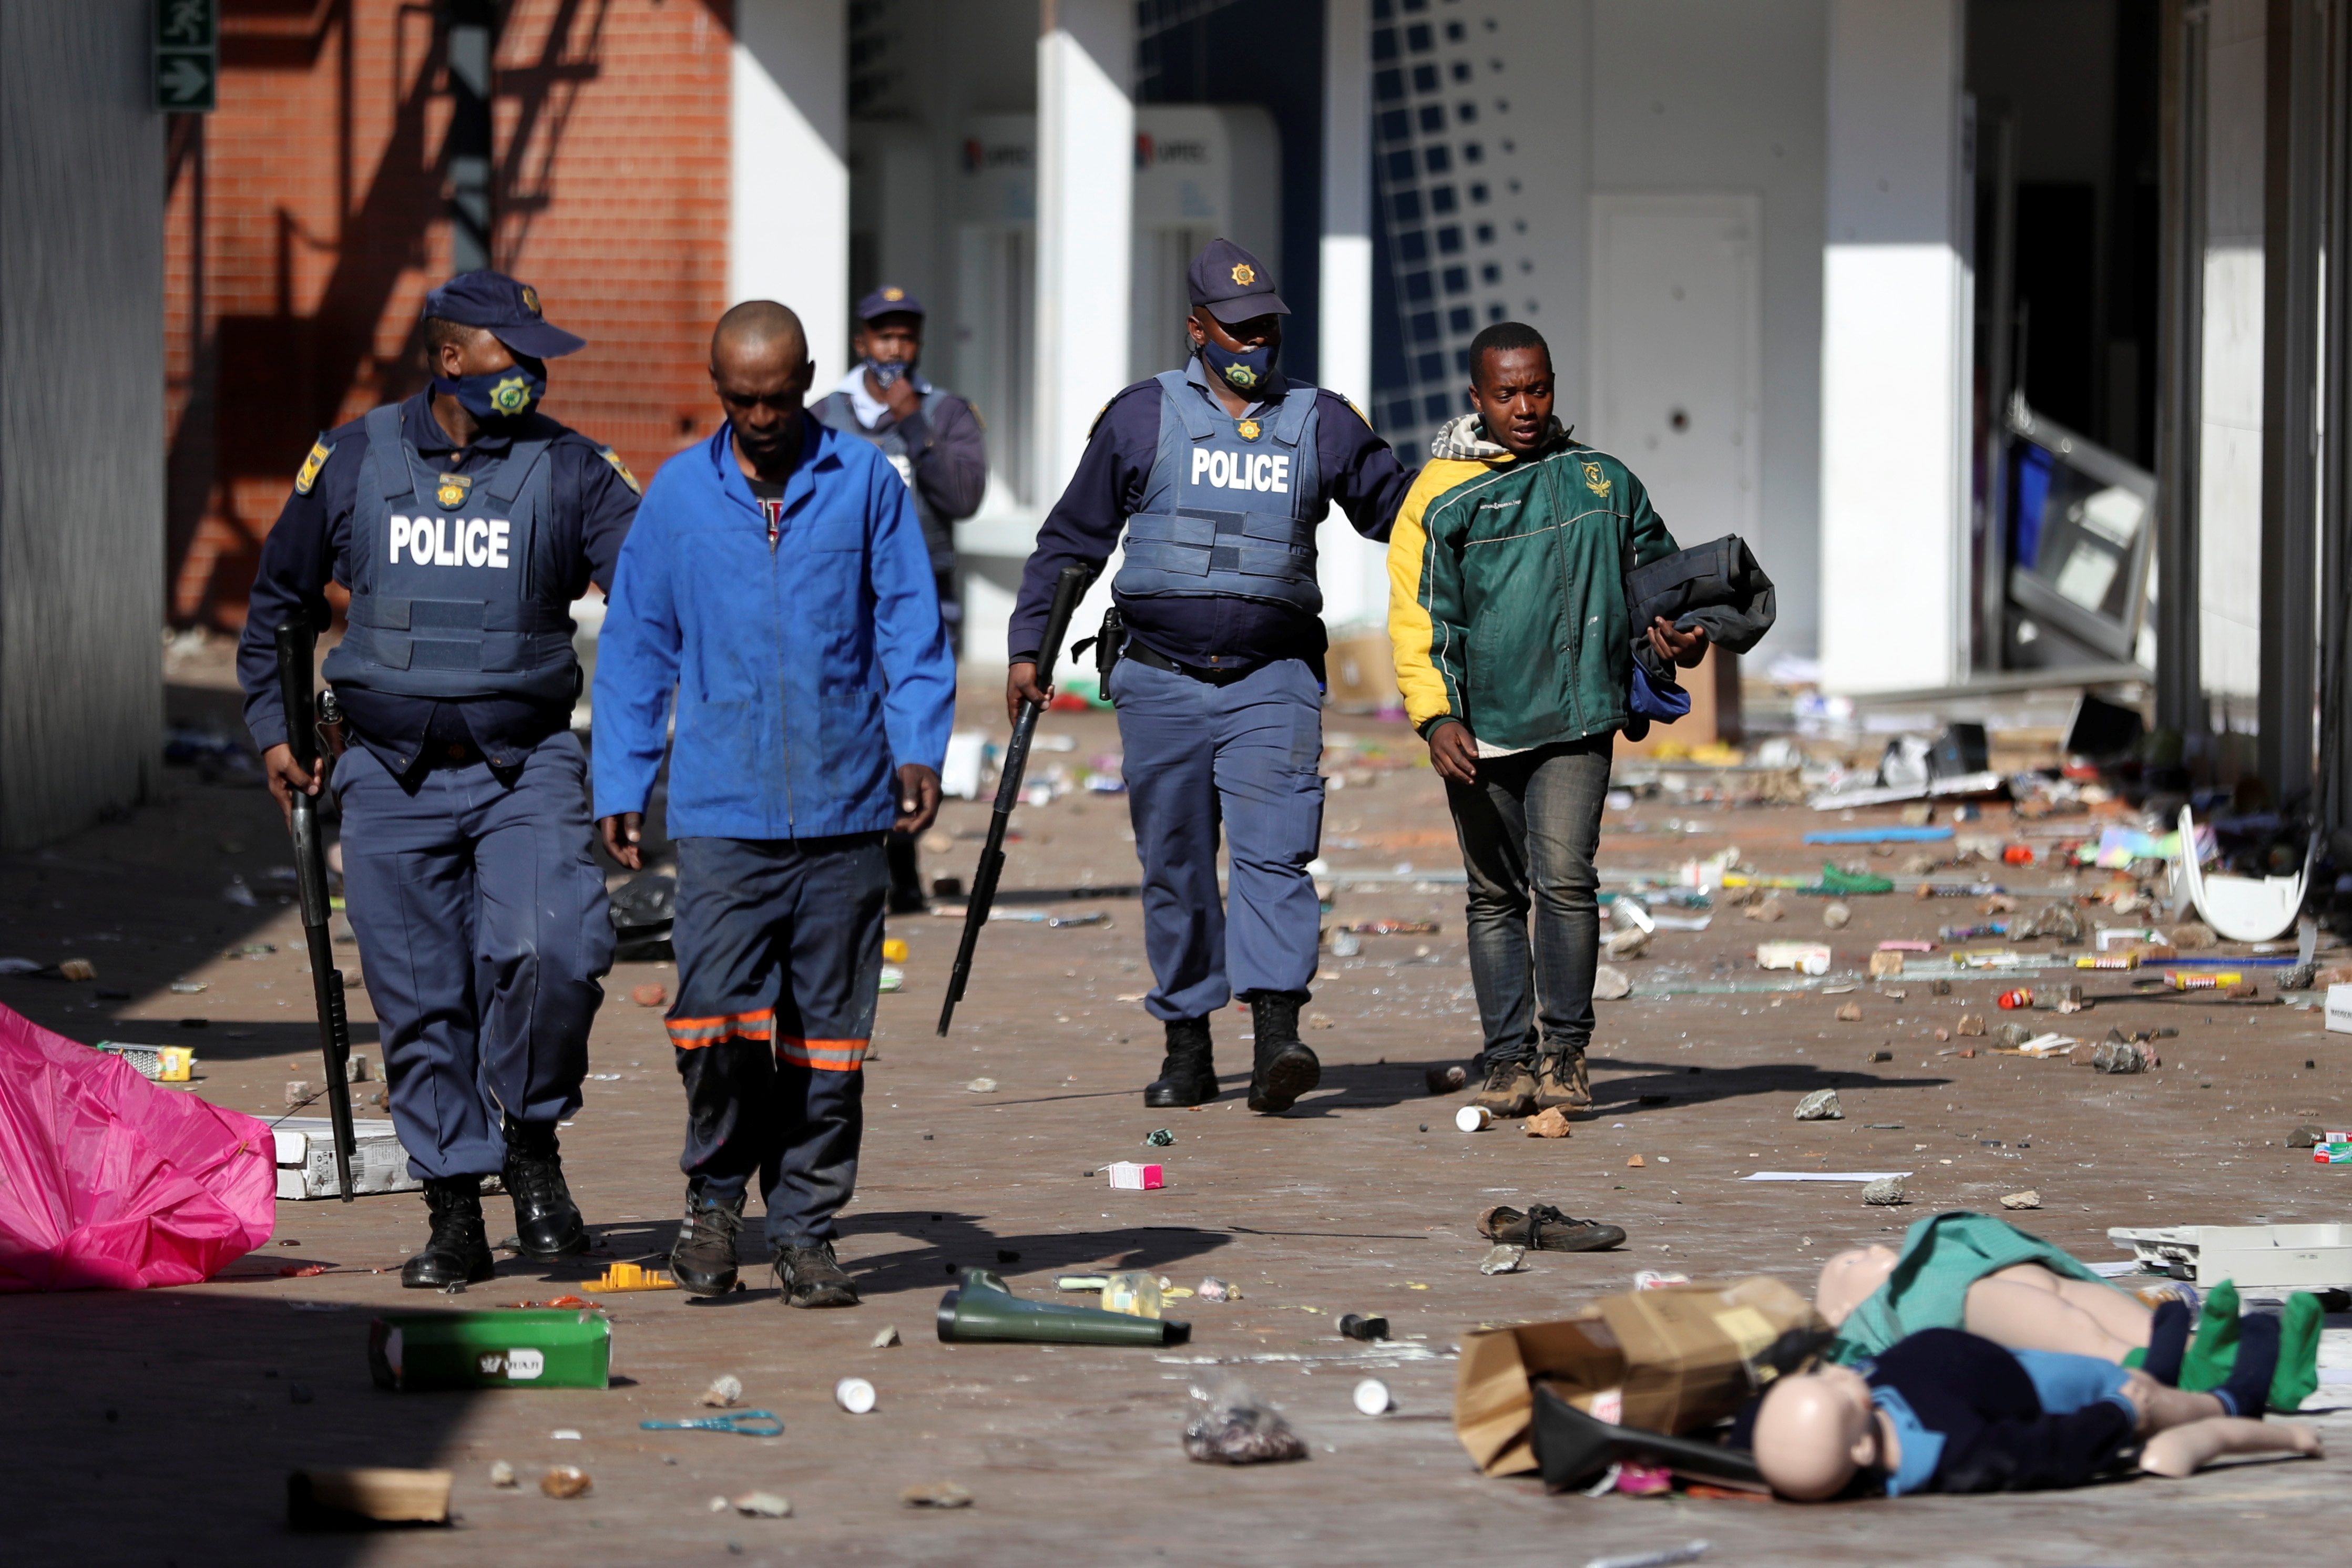 South Africa deploys army to quell unrest linked to Zuma jailing | Reuters